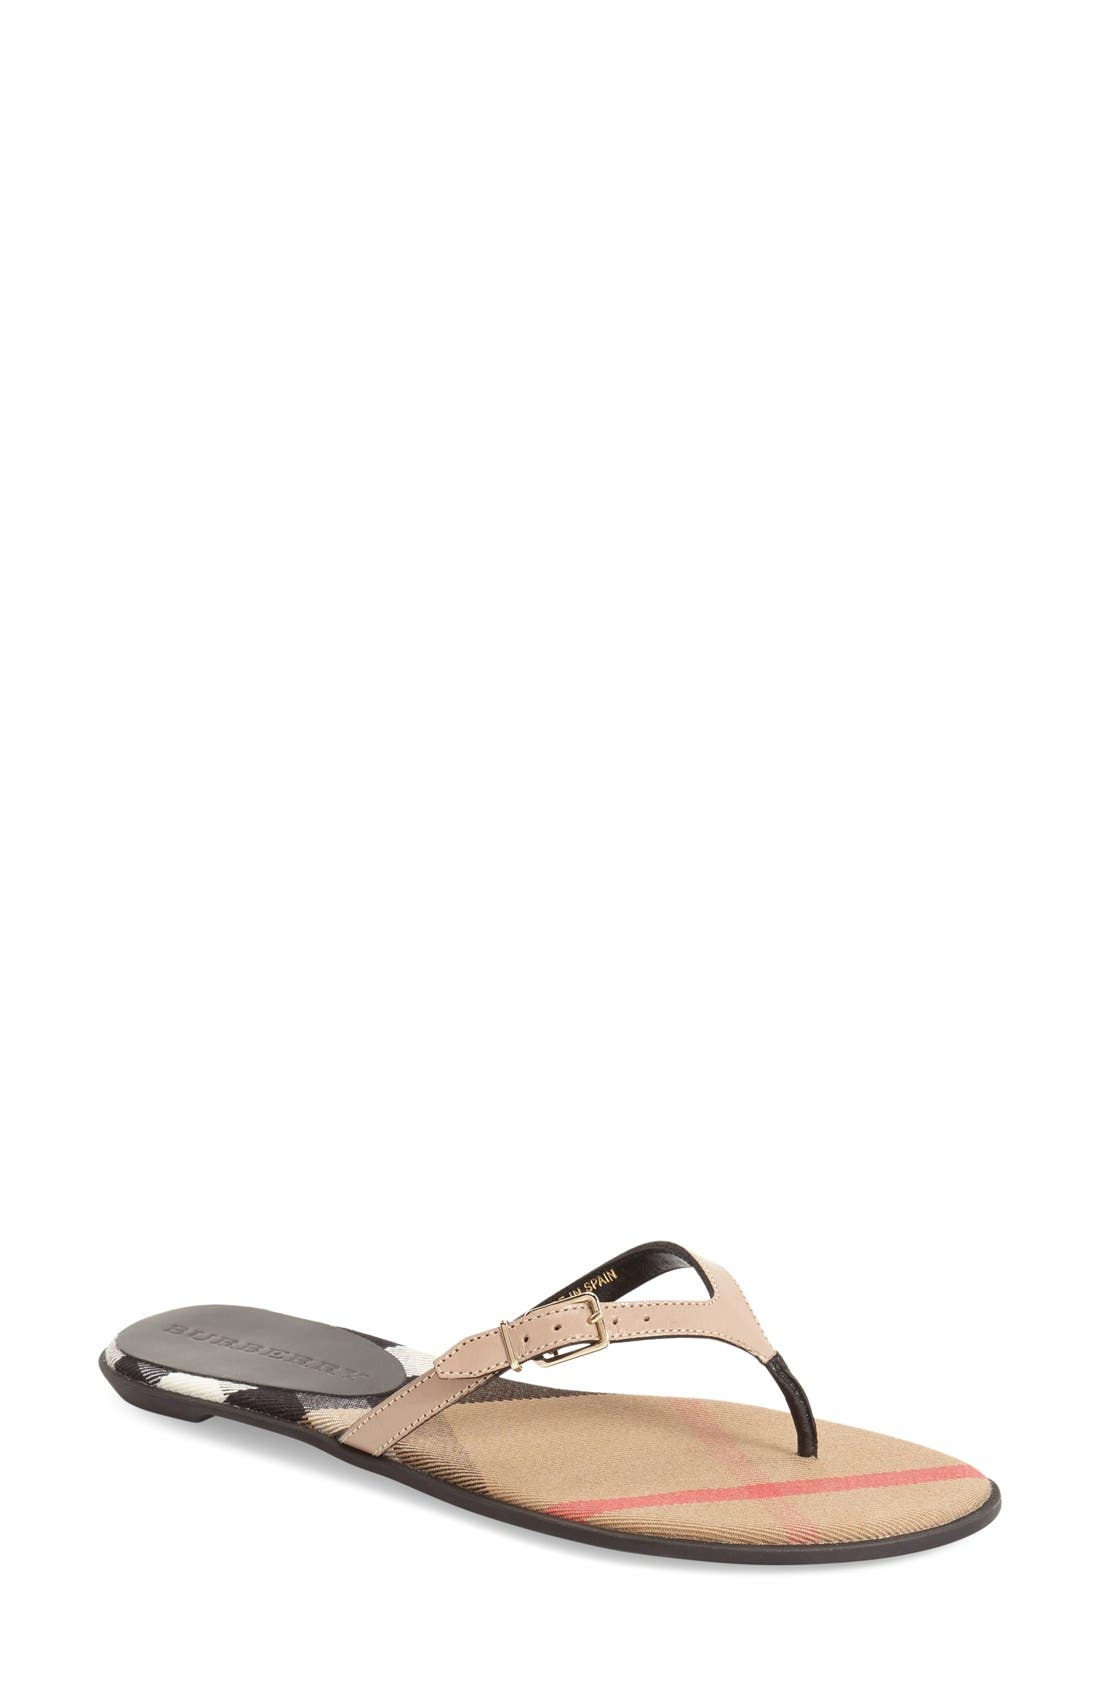 Alternate Image 1 Selected - Burberry 'Meadow' Sandal